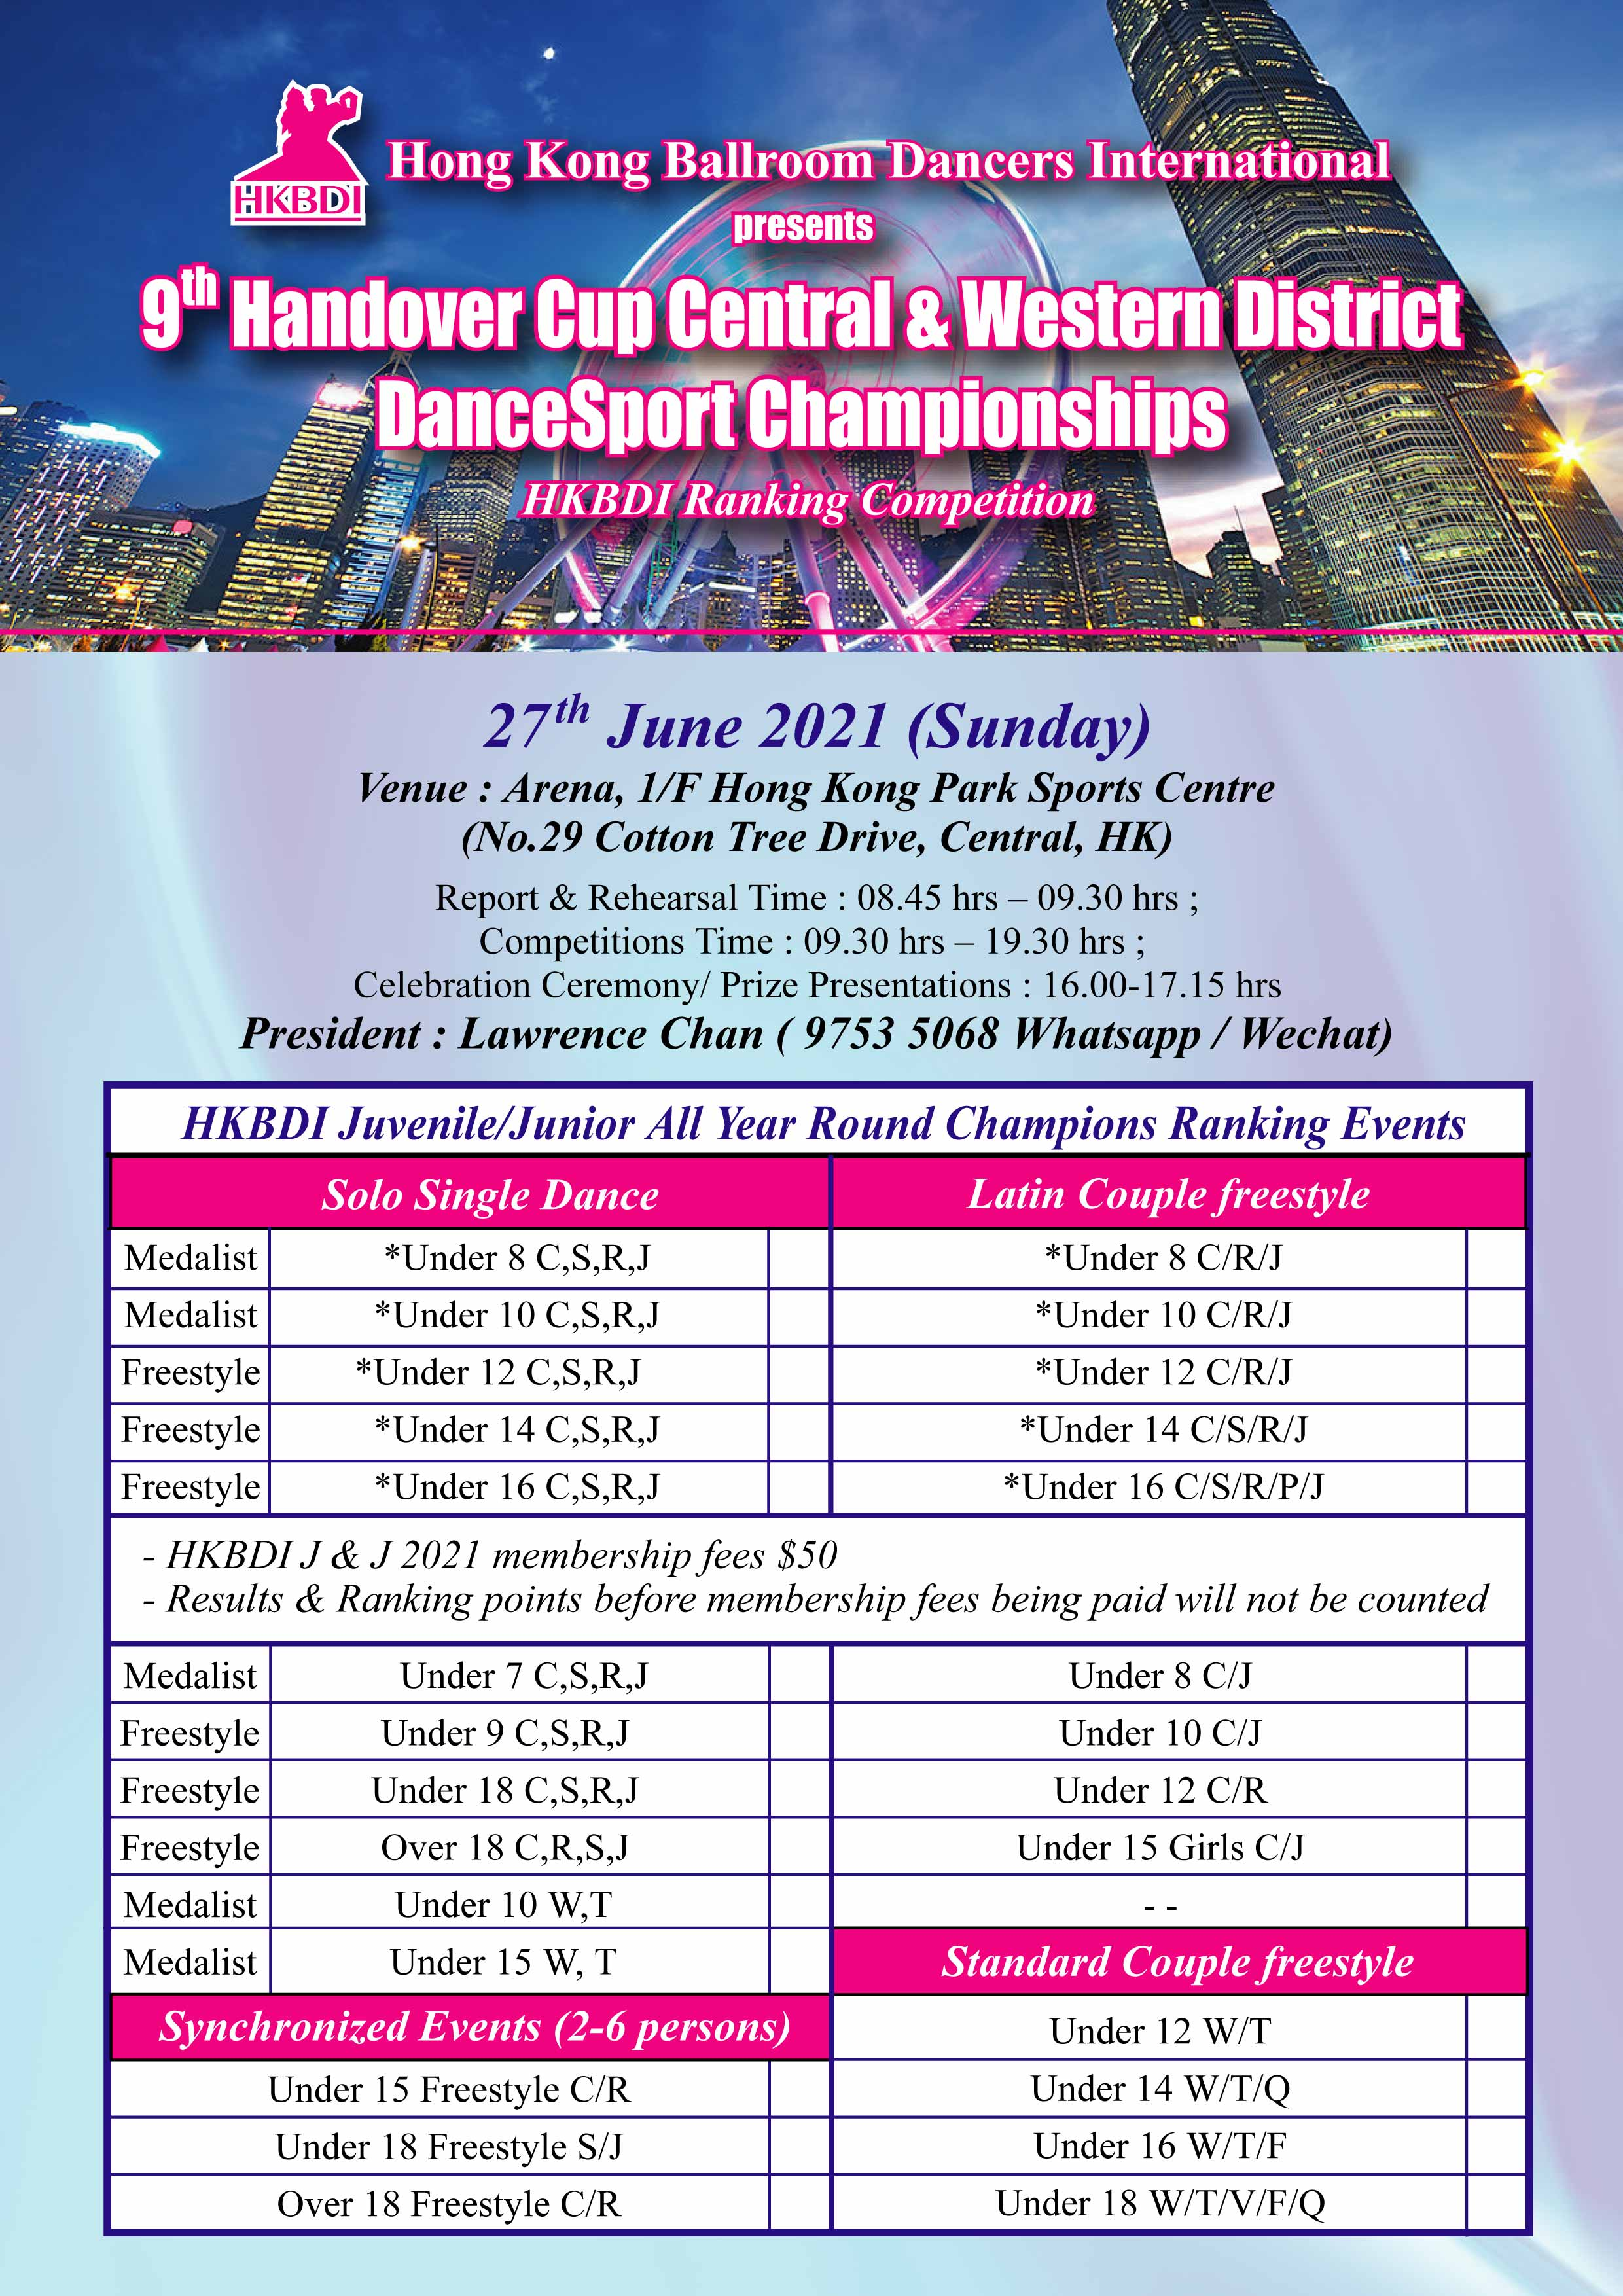 9th Handover Cup Central & Western District DanceSport Championships